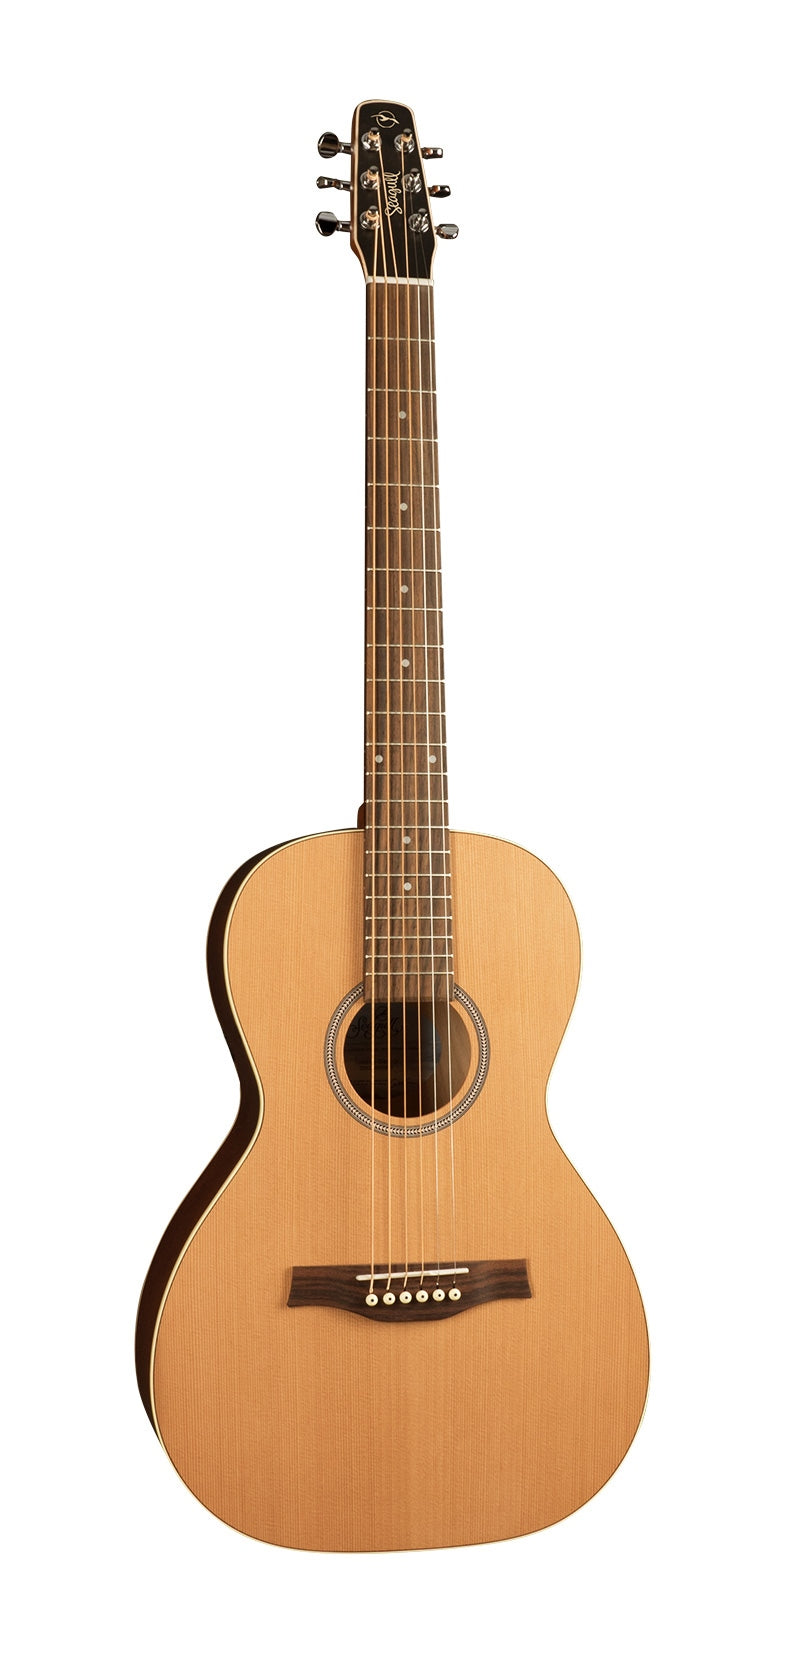 Seagull Coastline Cedar Grand Acoustic Guitar - Natural